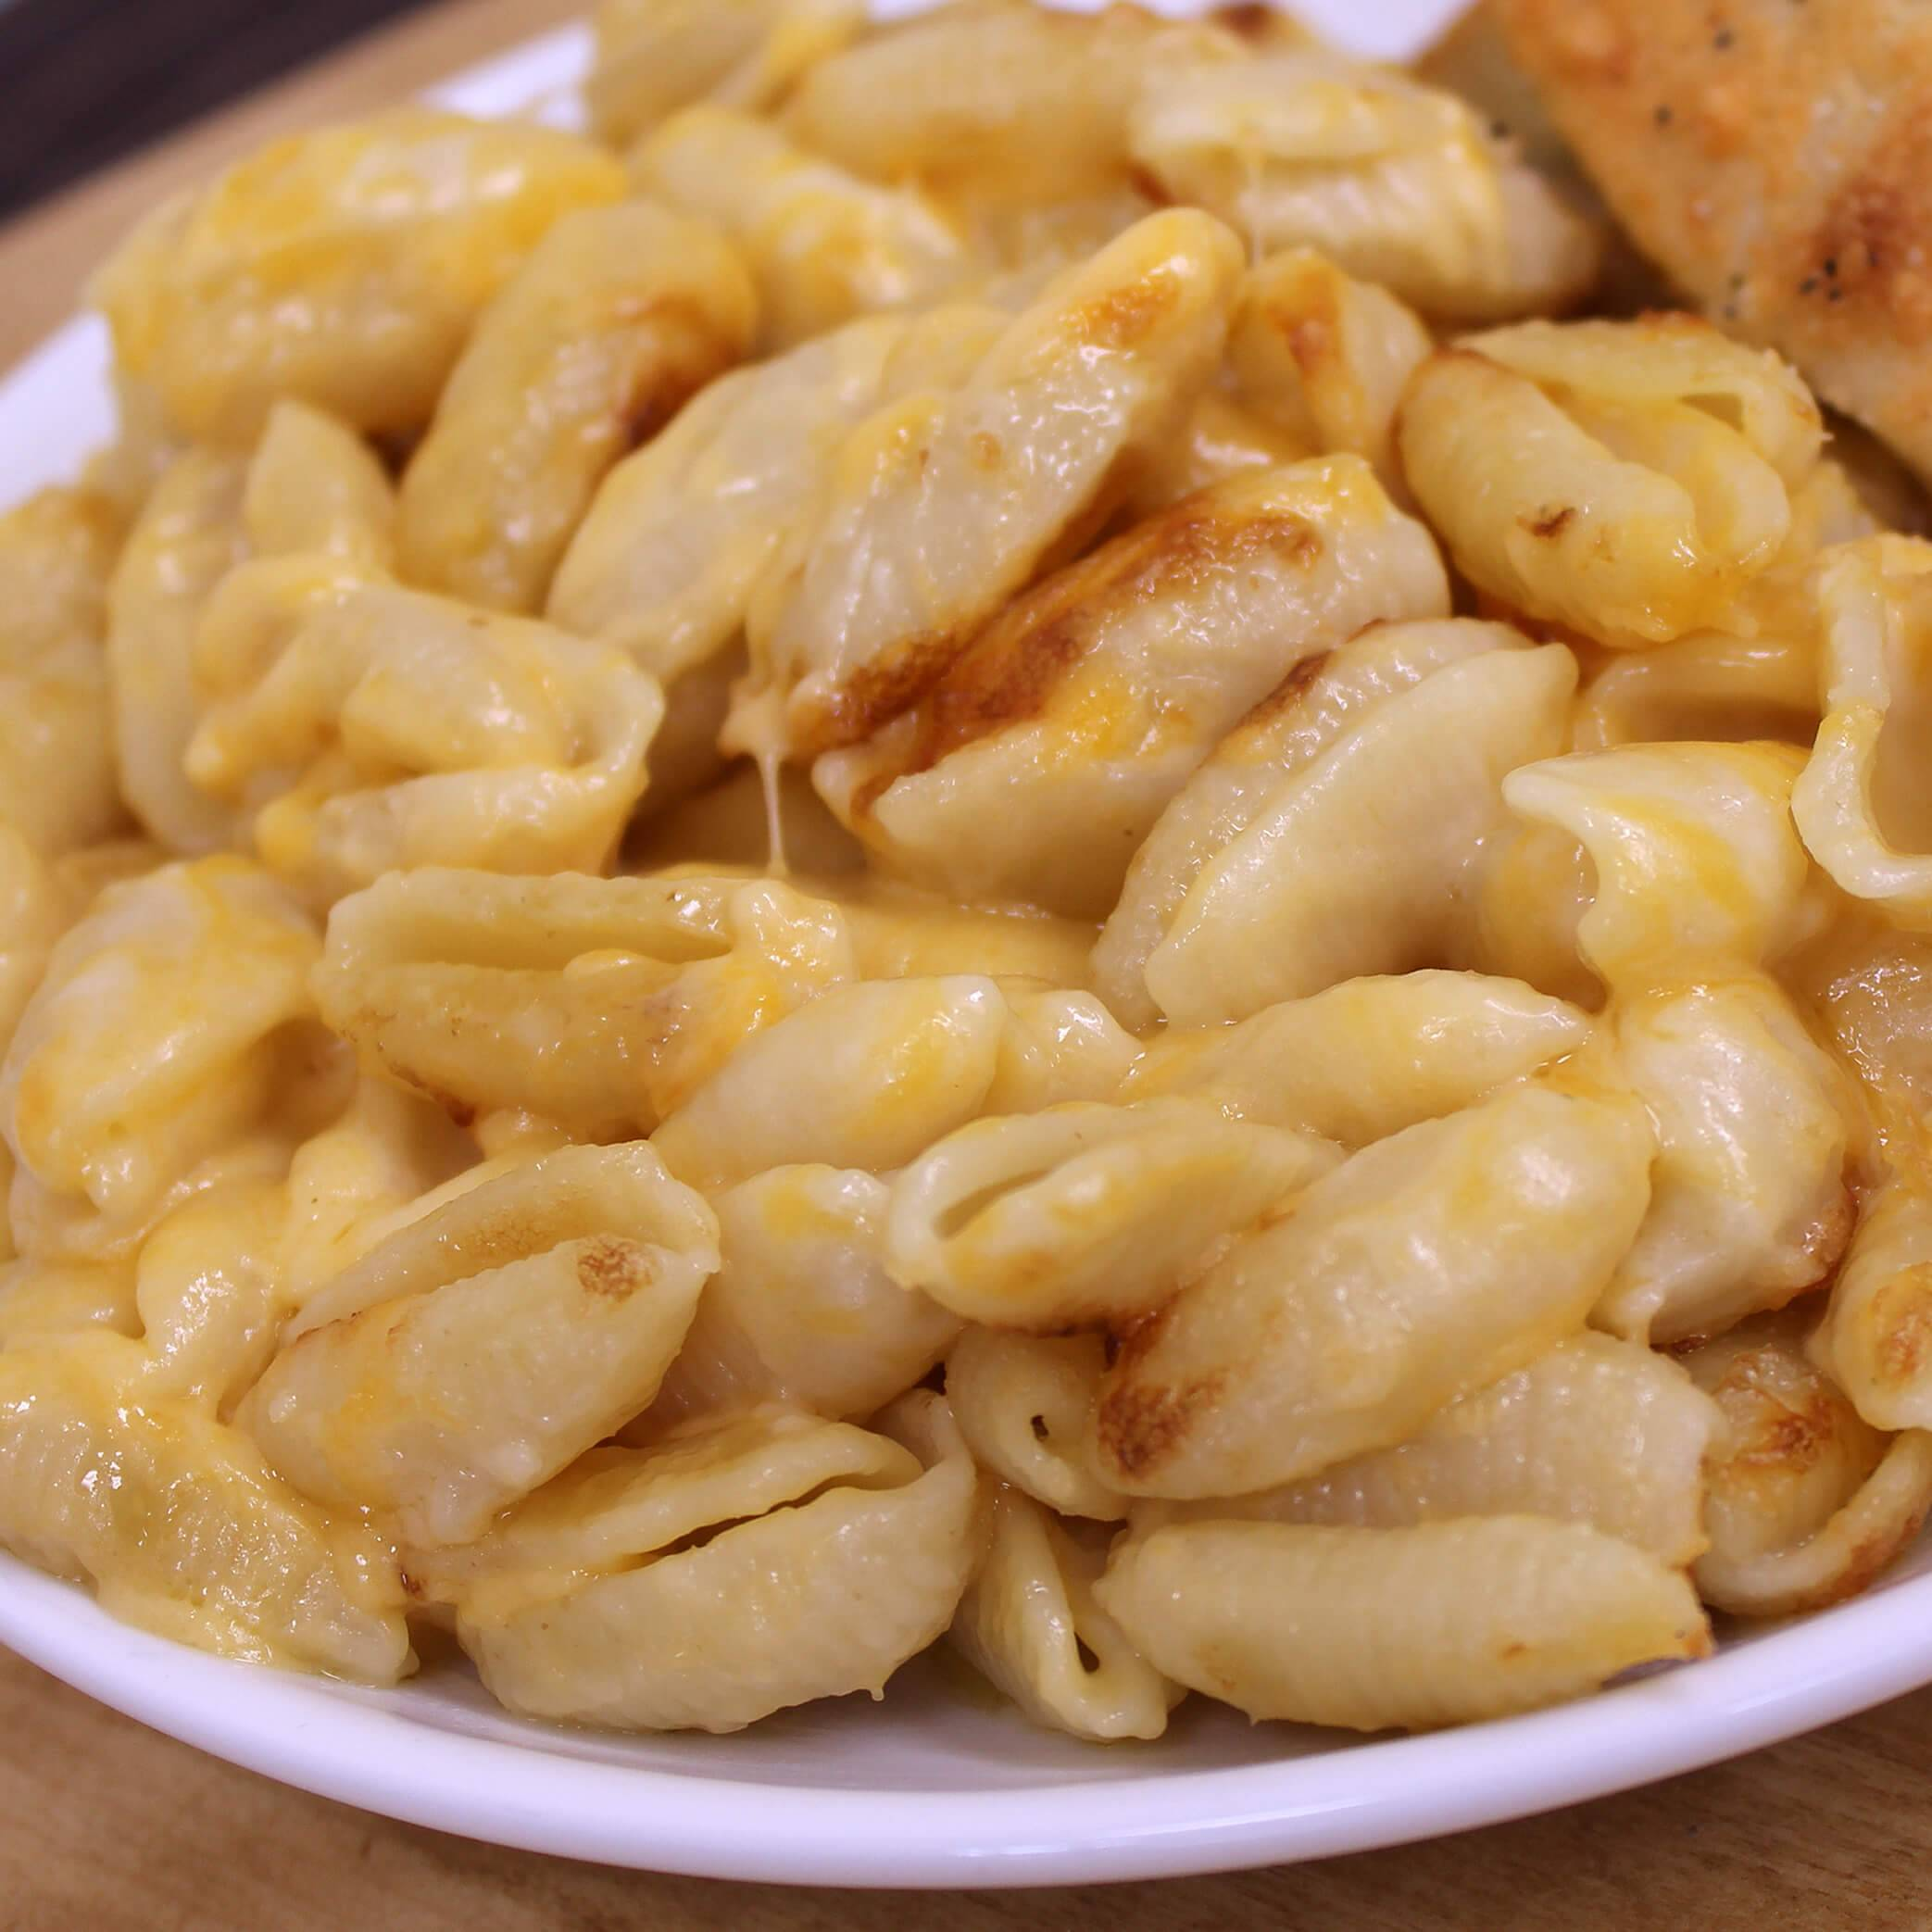 homemade fresh MacNCheese delivery mac and cheese des moines iowa